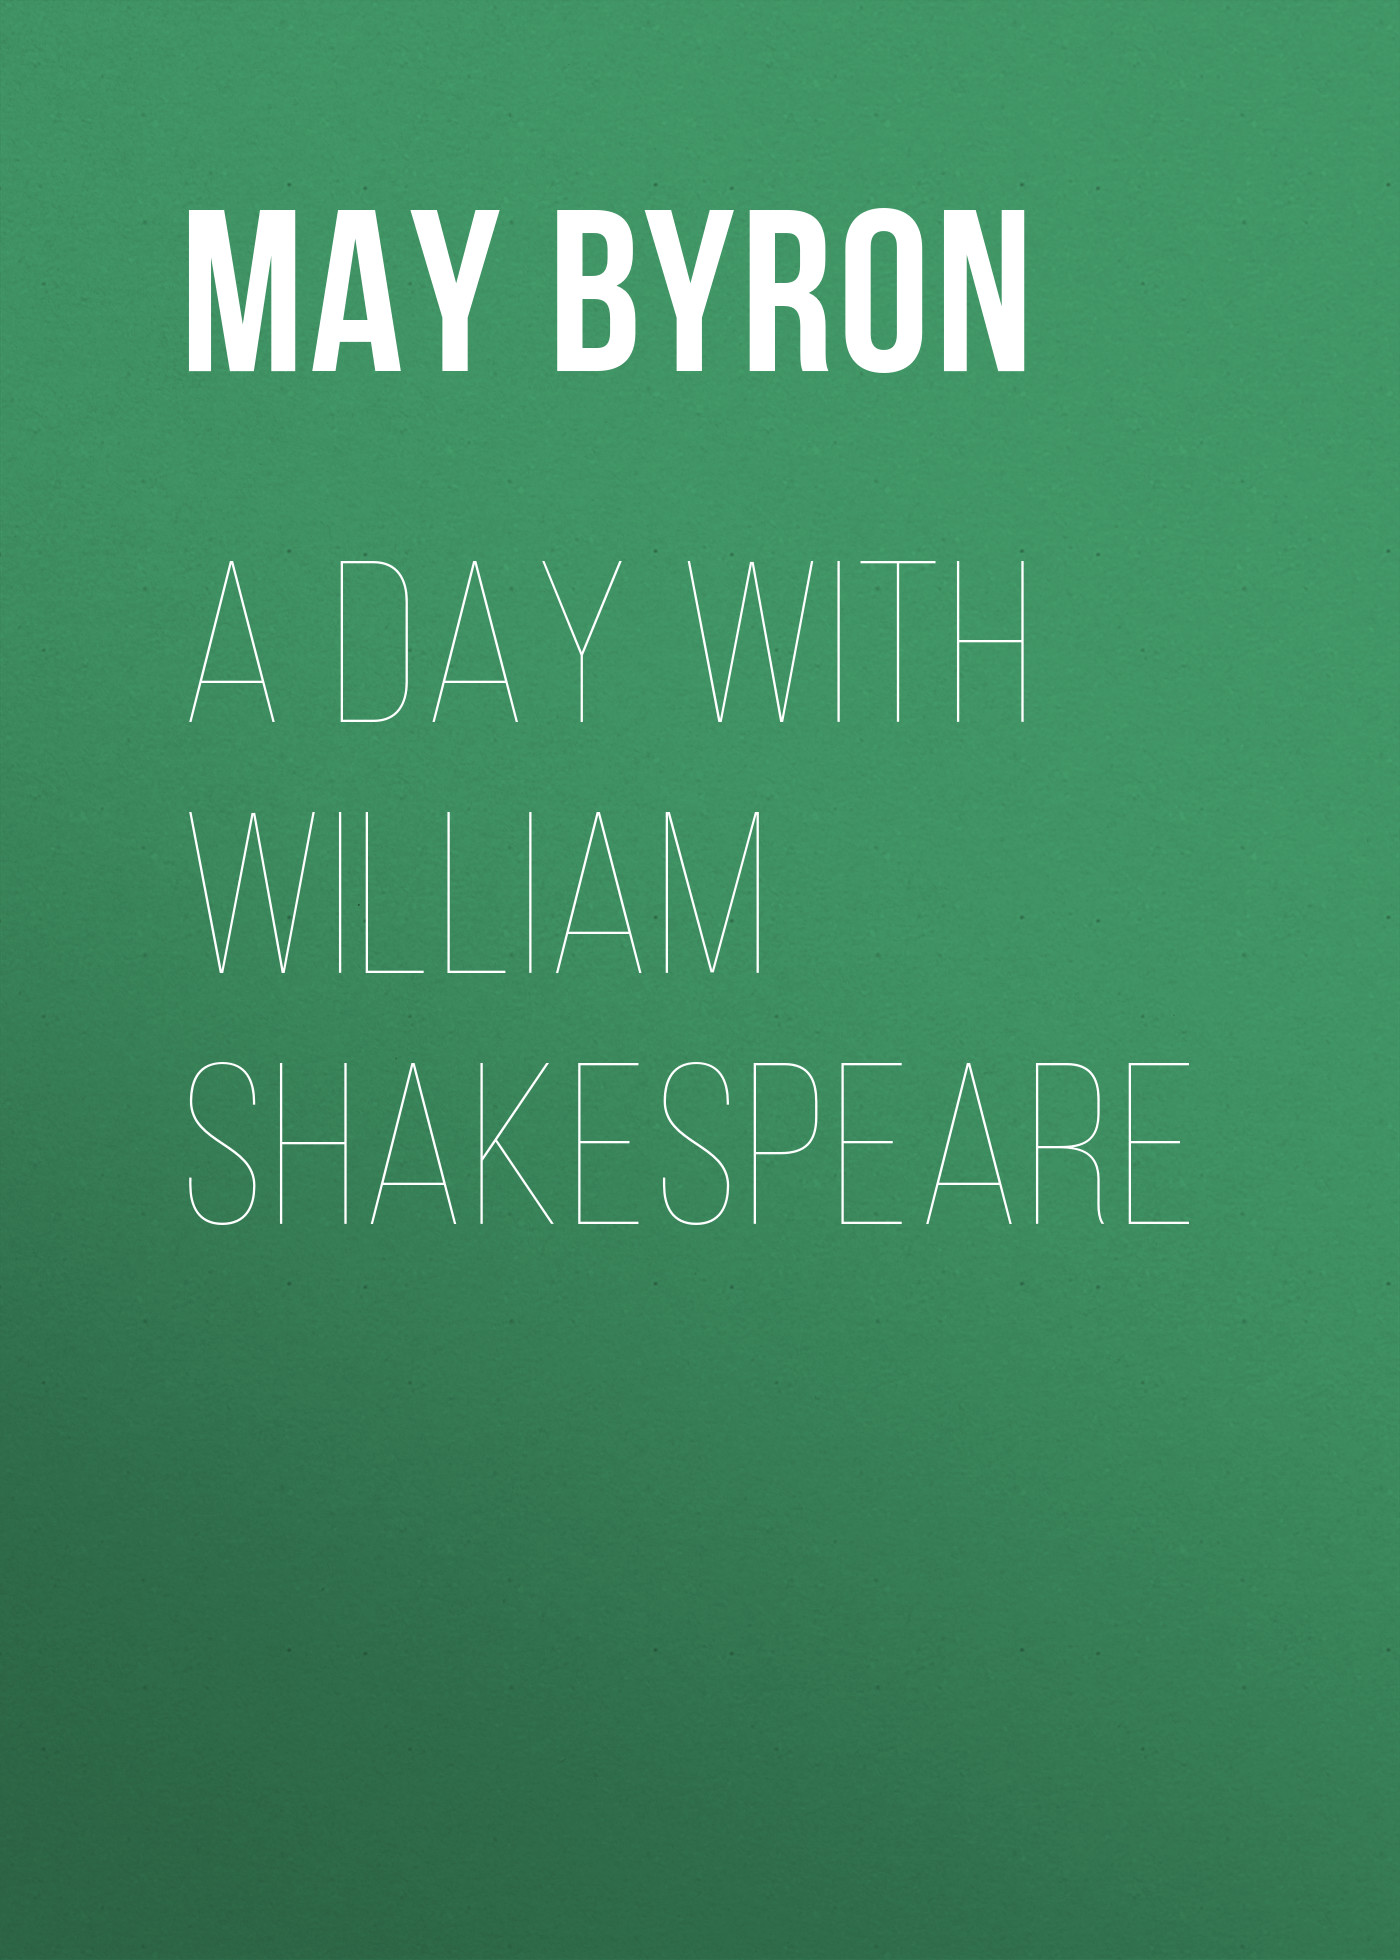 лучшая цена Byron May Clarissa Gillington A Day with William Shakespeare